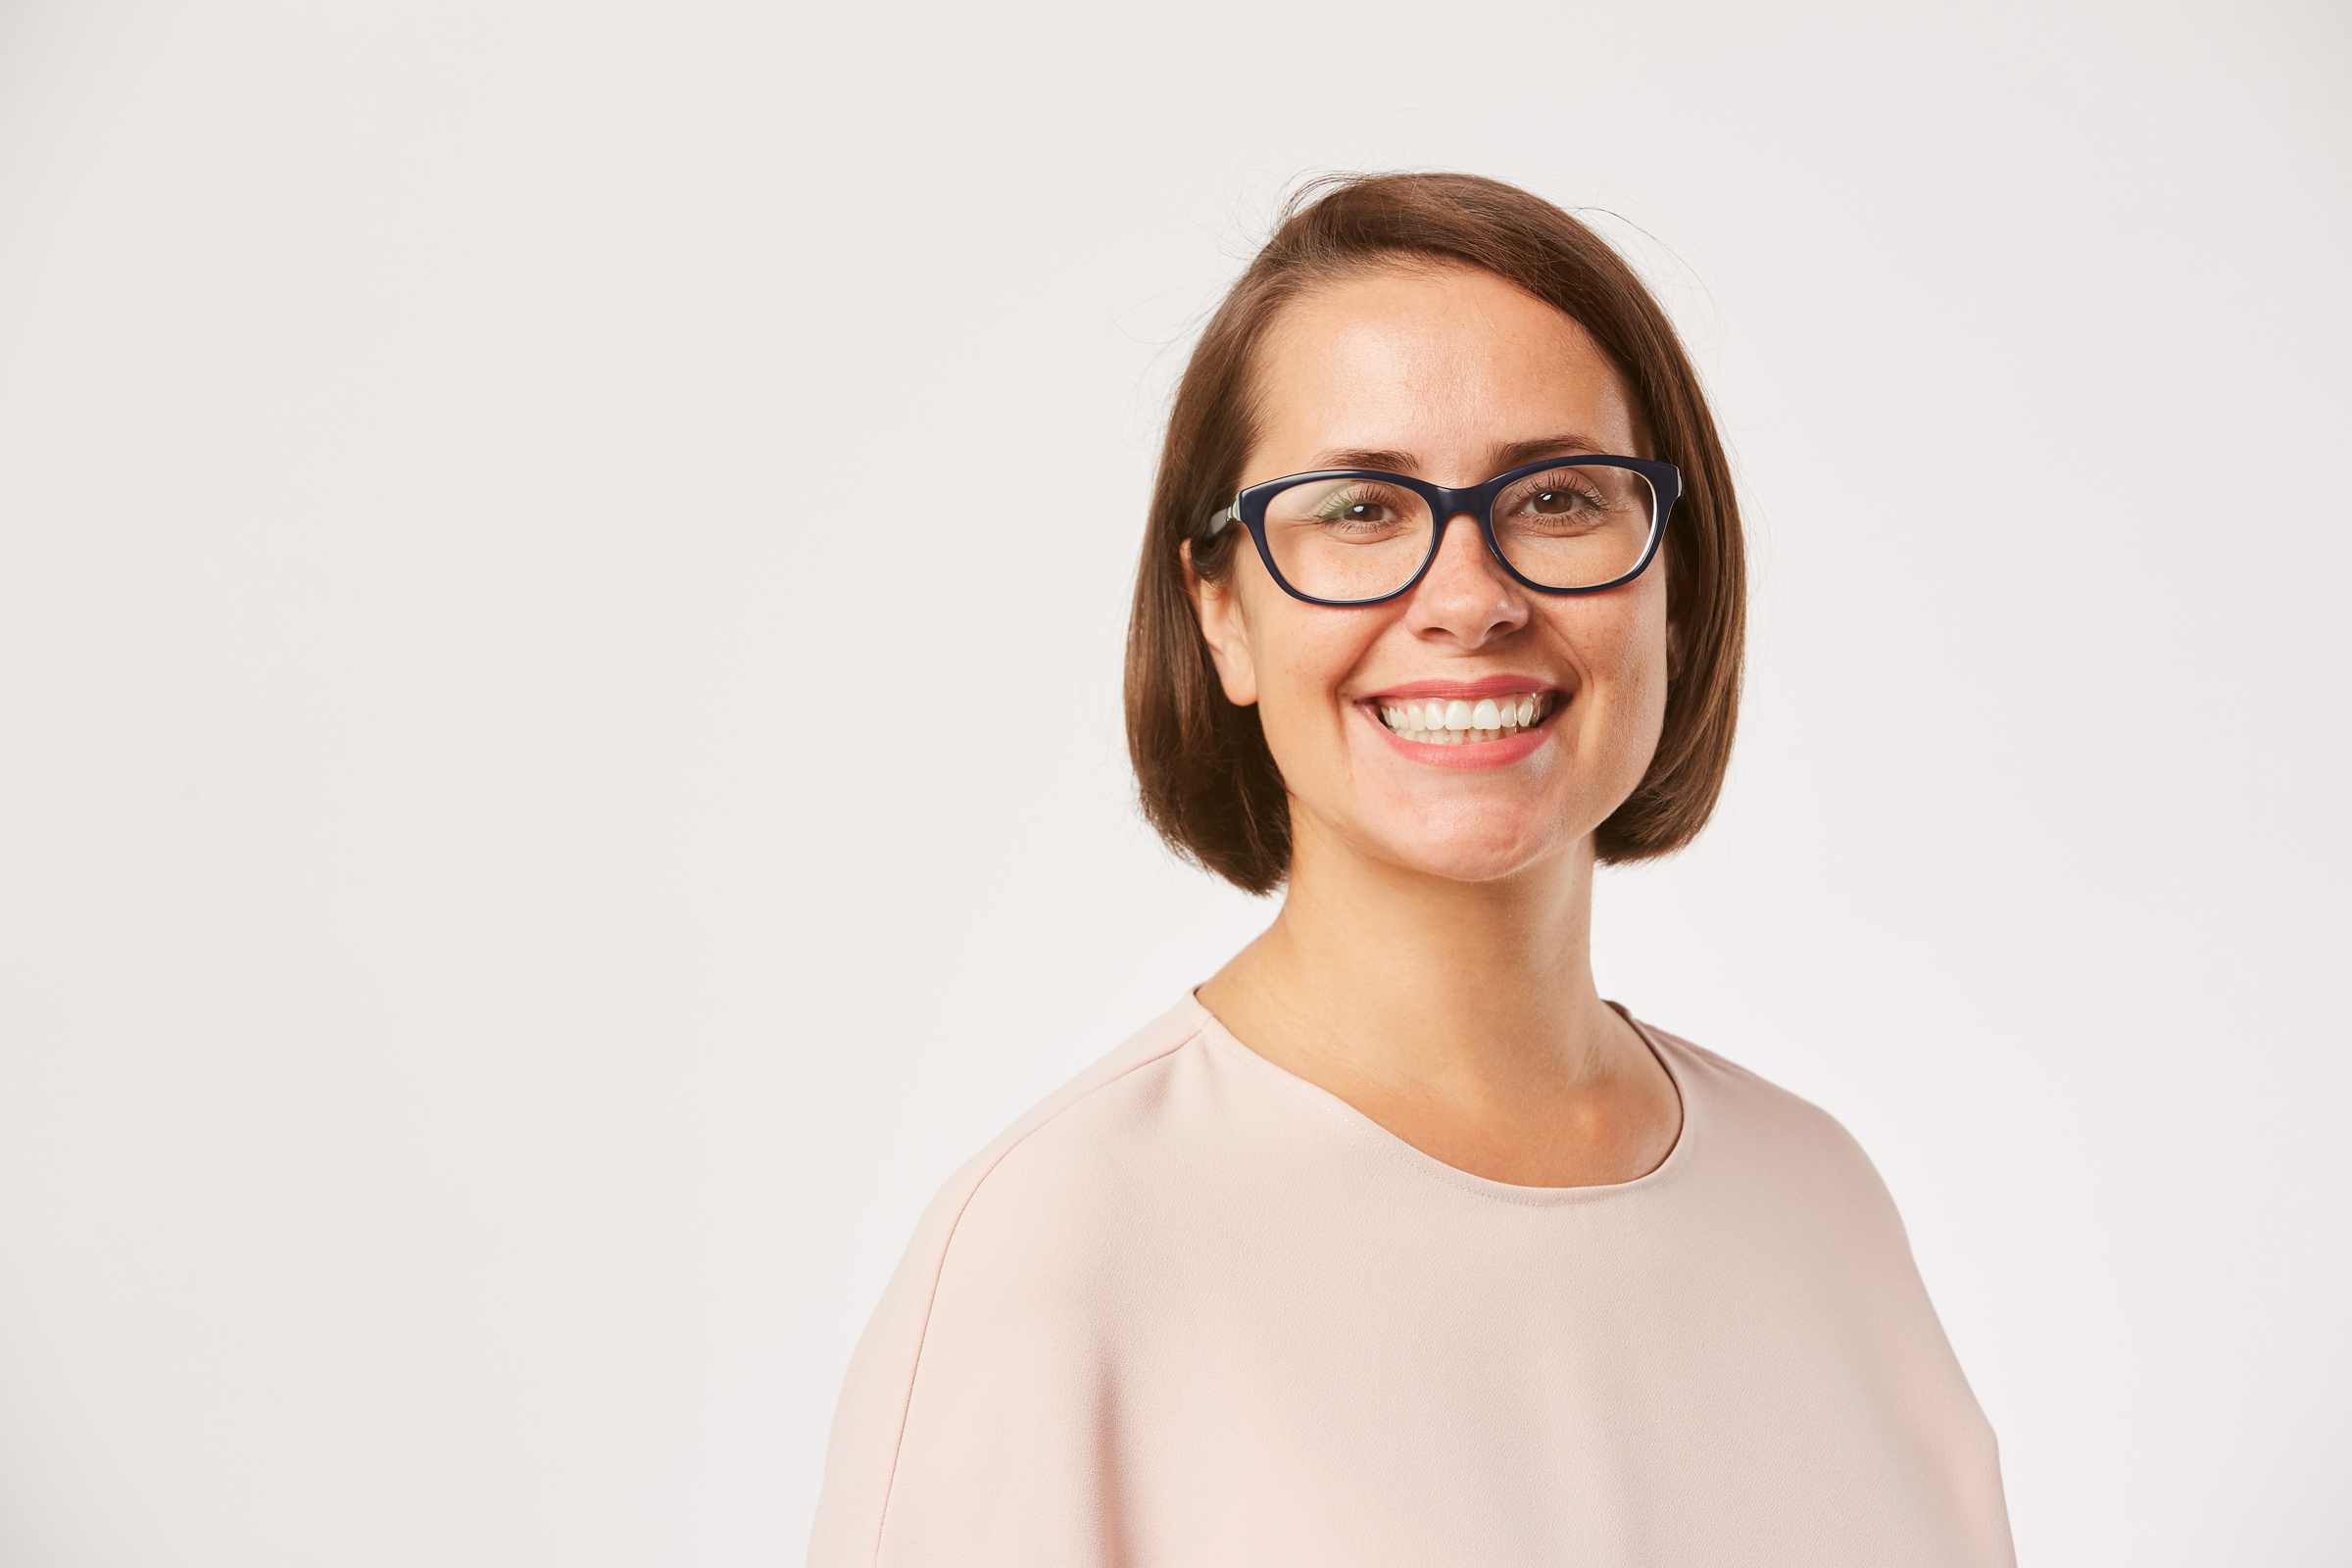 Young smiling woman in eyeglasses